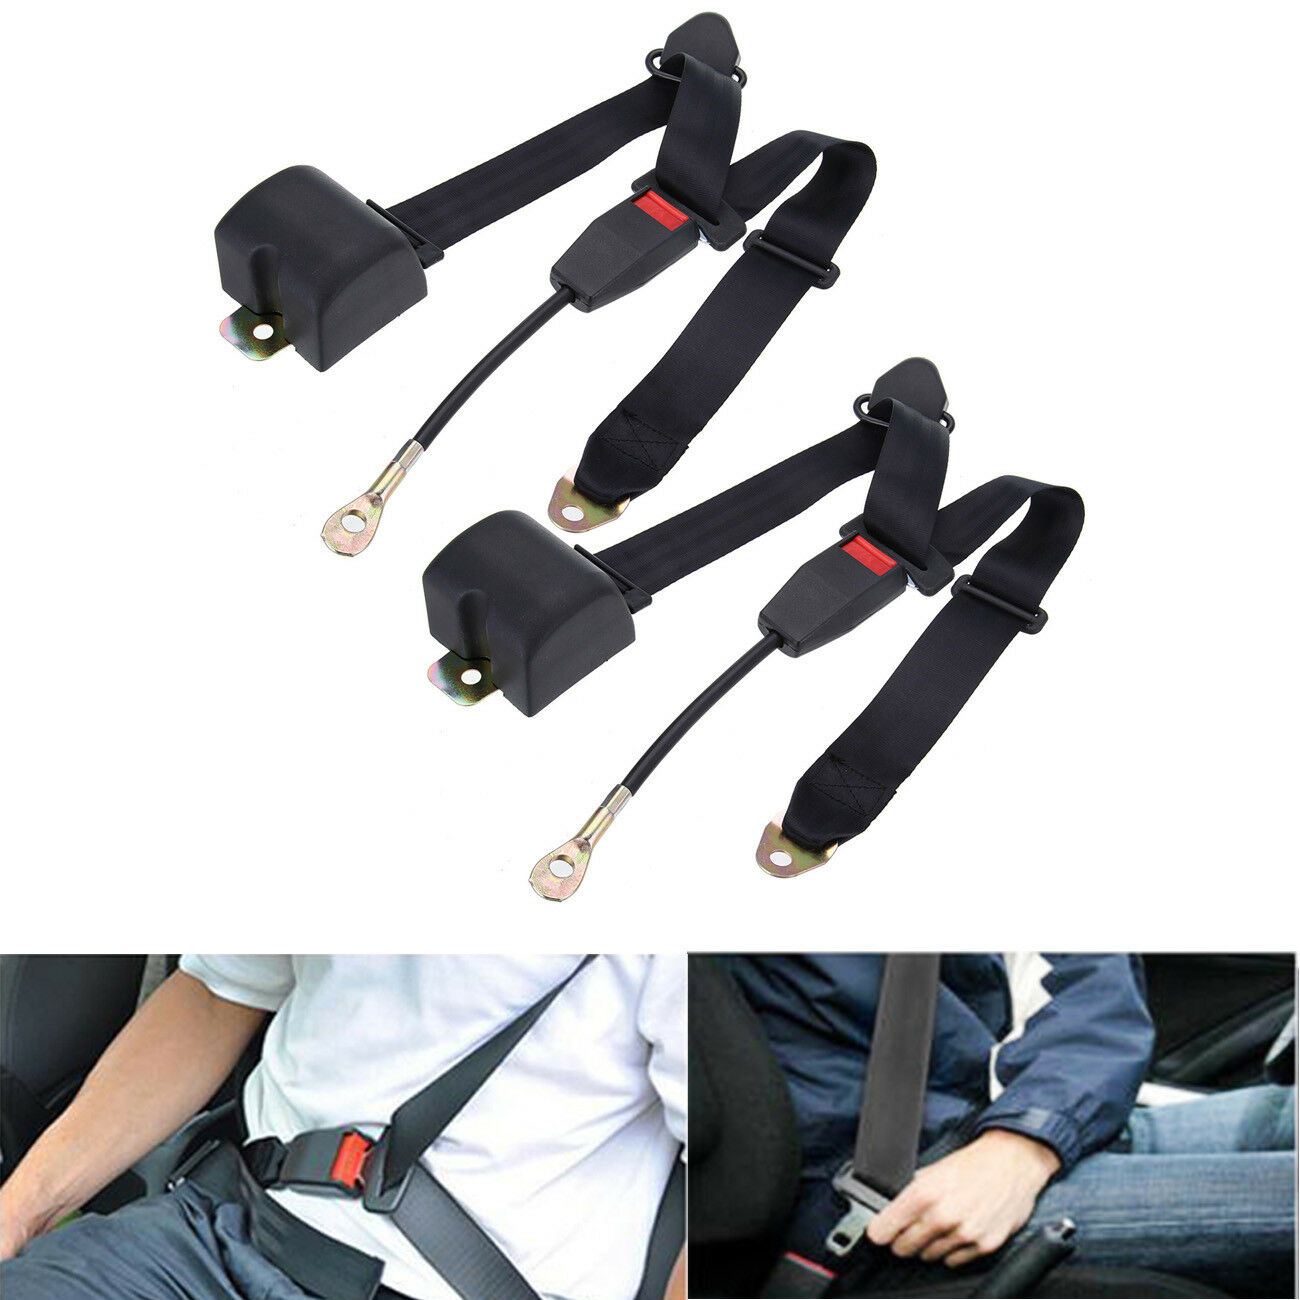 >Samger 2pcs <font><b>Car</b></font> Safety Adjustable <font><b>Seat</b></font> Belt Clip Extender Belts Universal Seatbelt 3 Point Automatic Belt Safety Belt 300mm